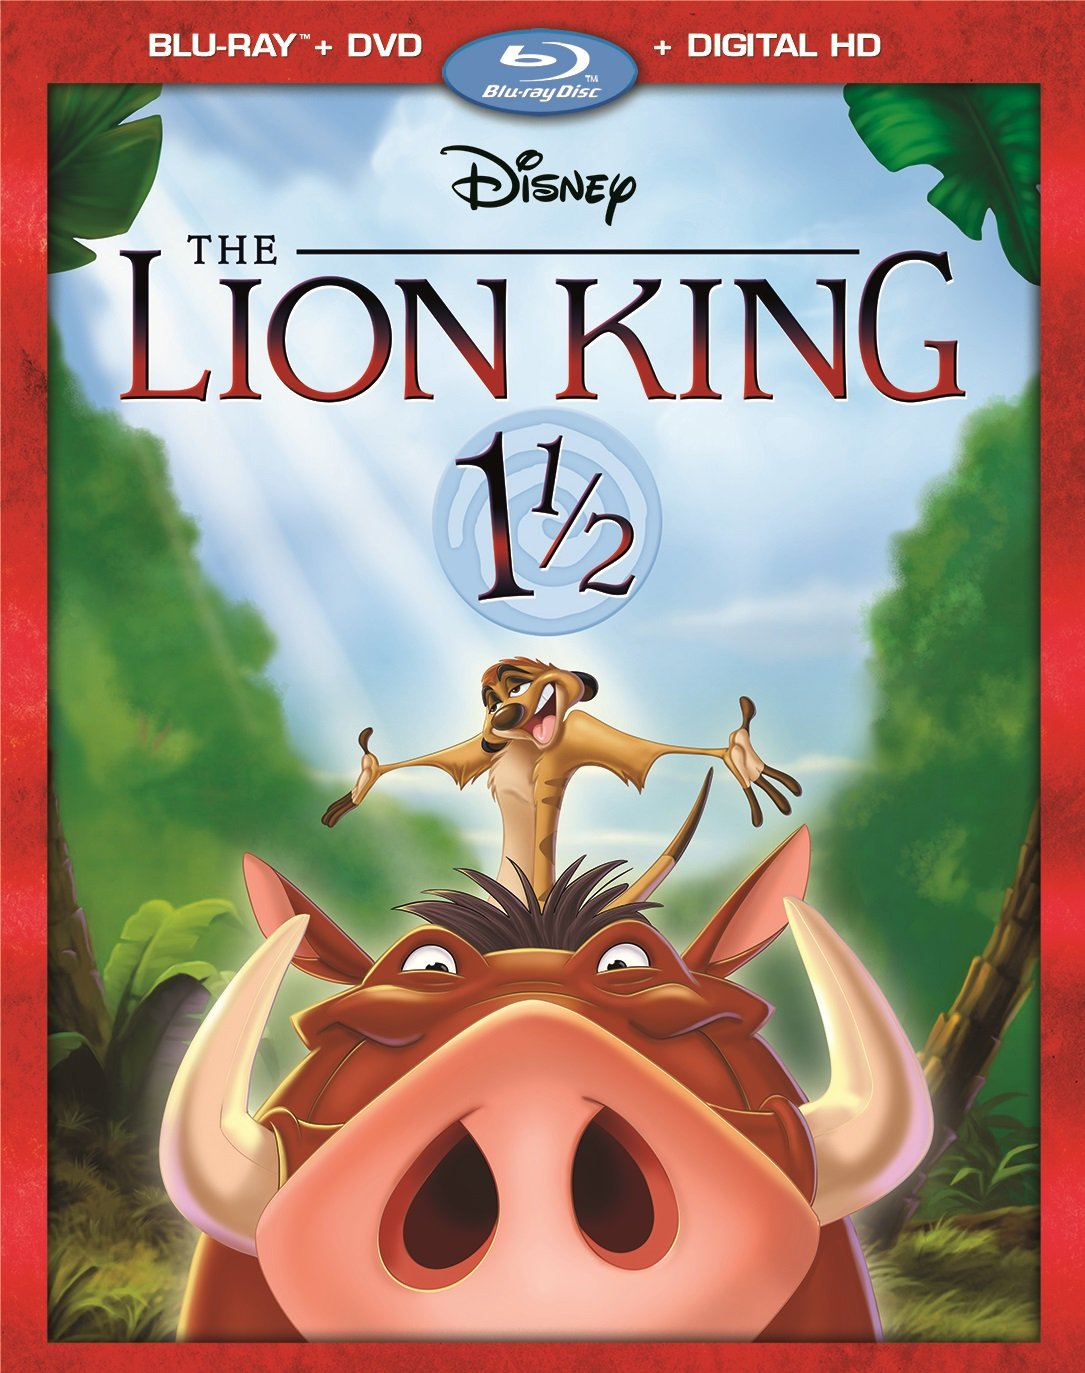 The Lion King 1 1/2 [Blu-ray]